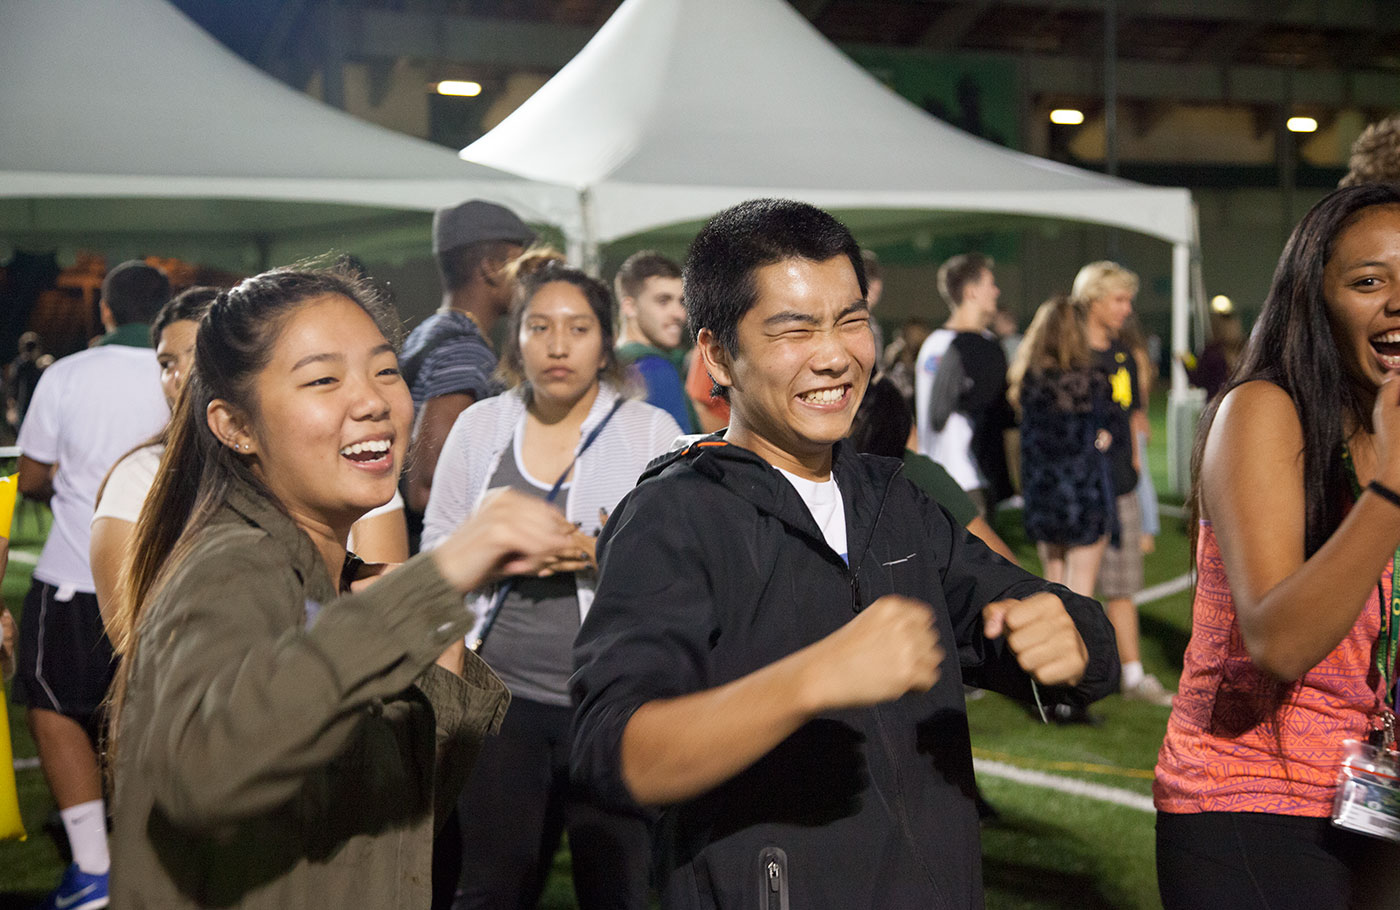 Excited crowds of students having a good time on the turf fields at night.